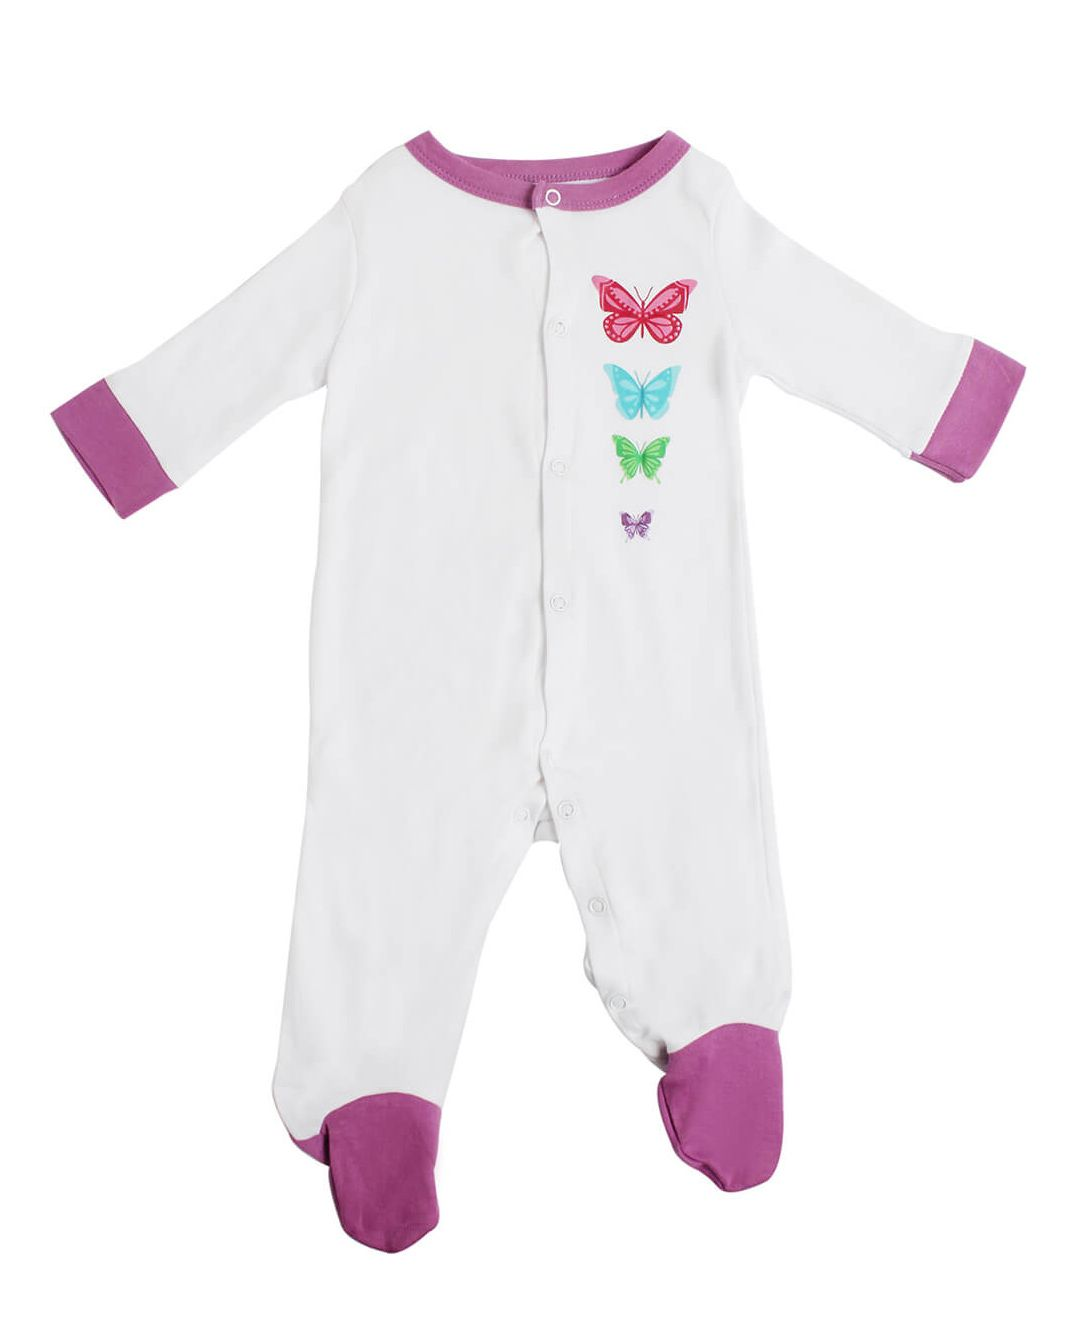 3f4268b44 Morisons Baby Dreams Full Sleeves Footed Romper Butterfly Print - Purple  White